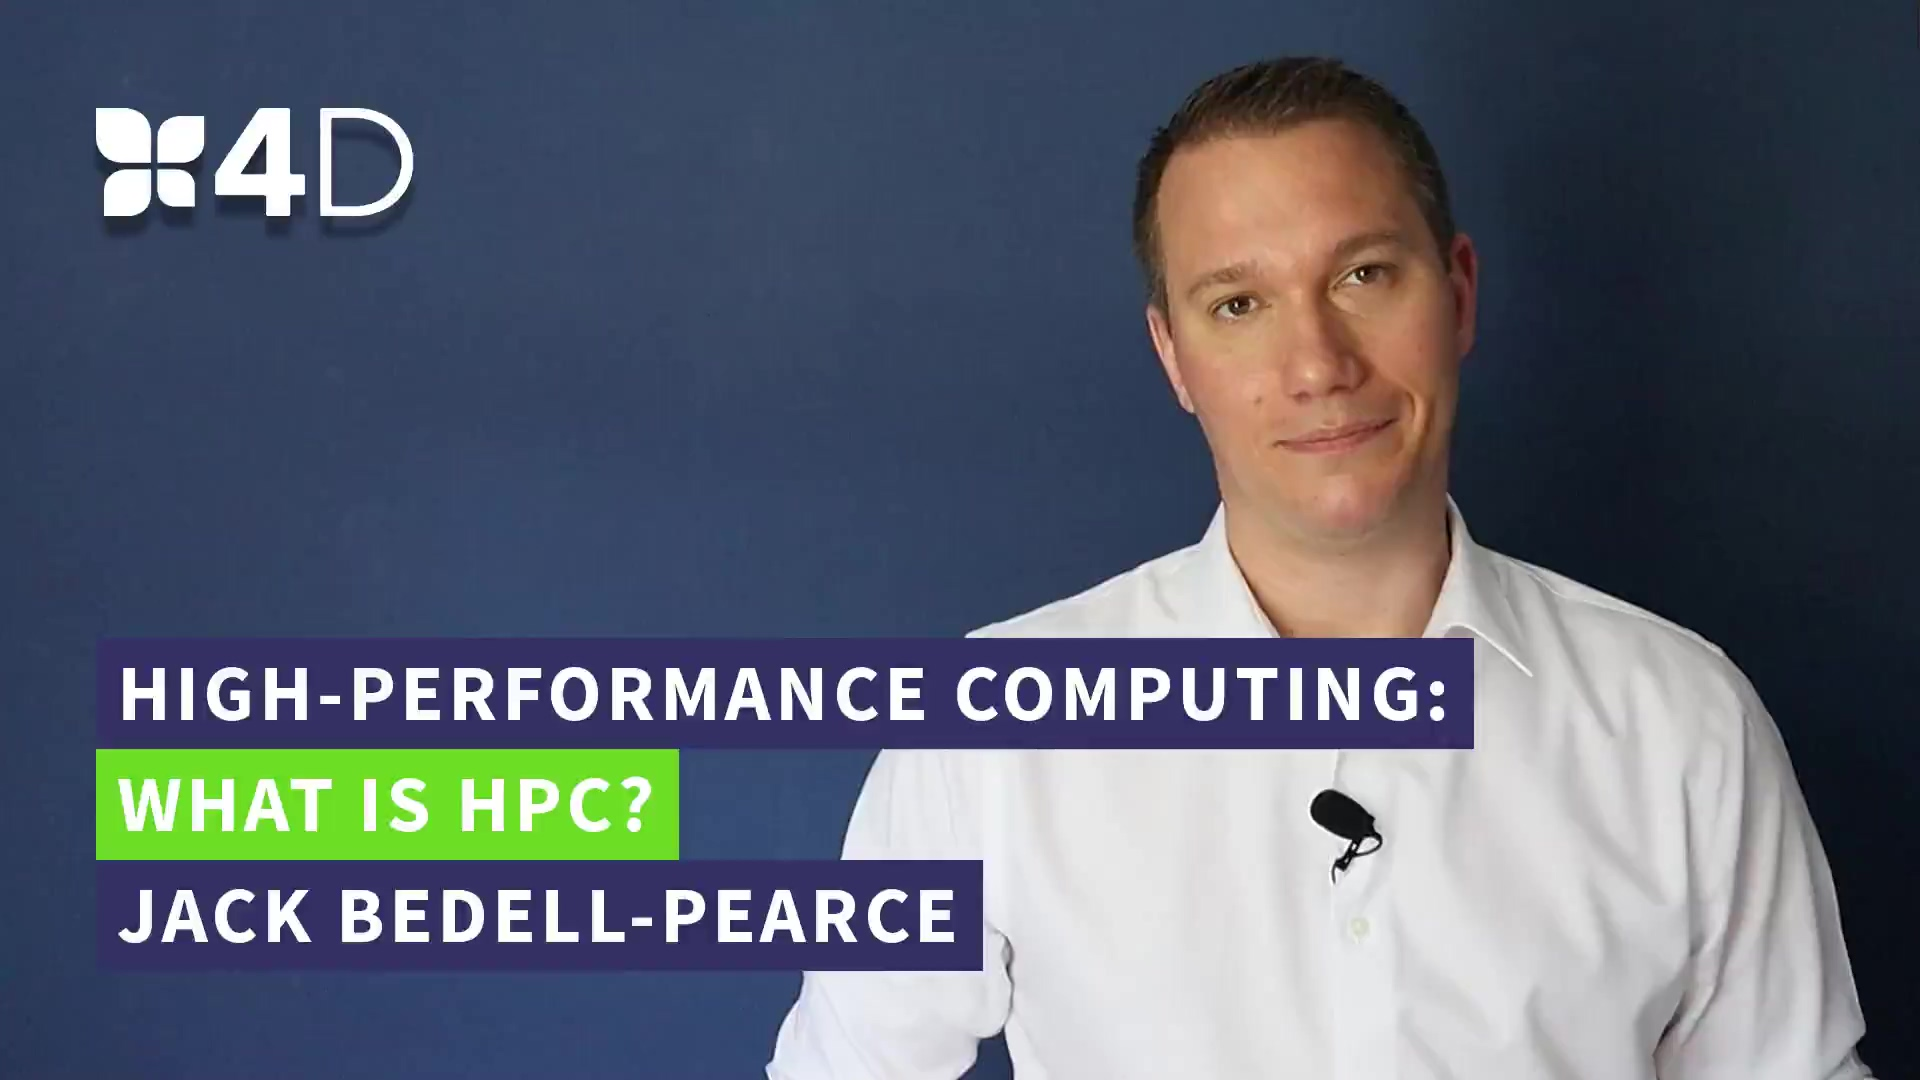 1. 4D - What is HPC